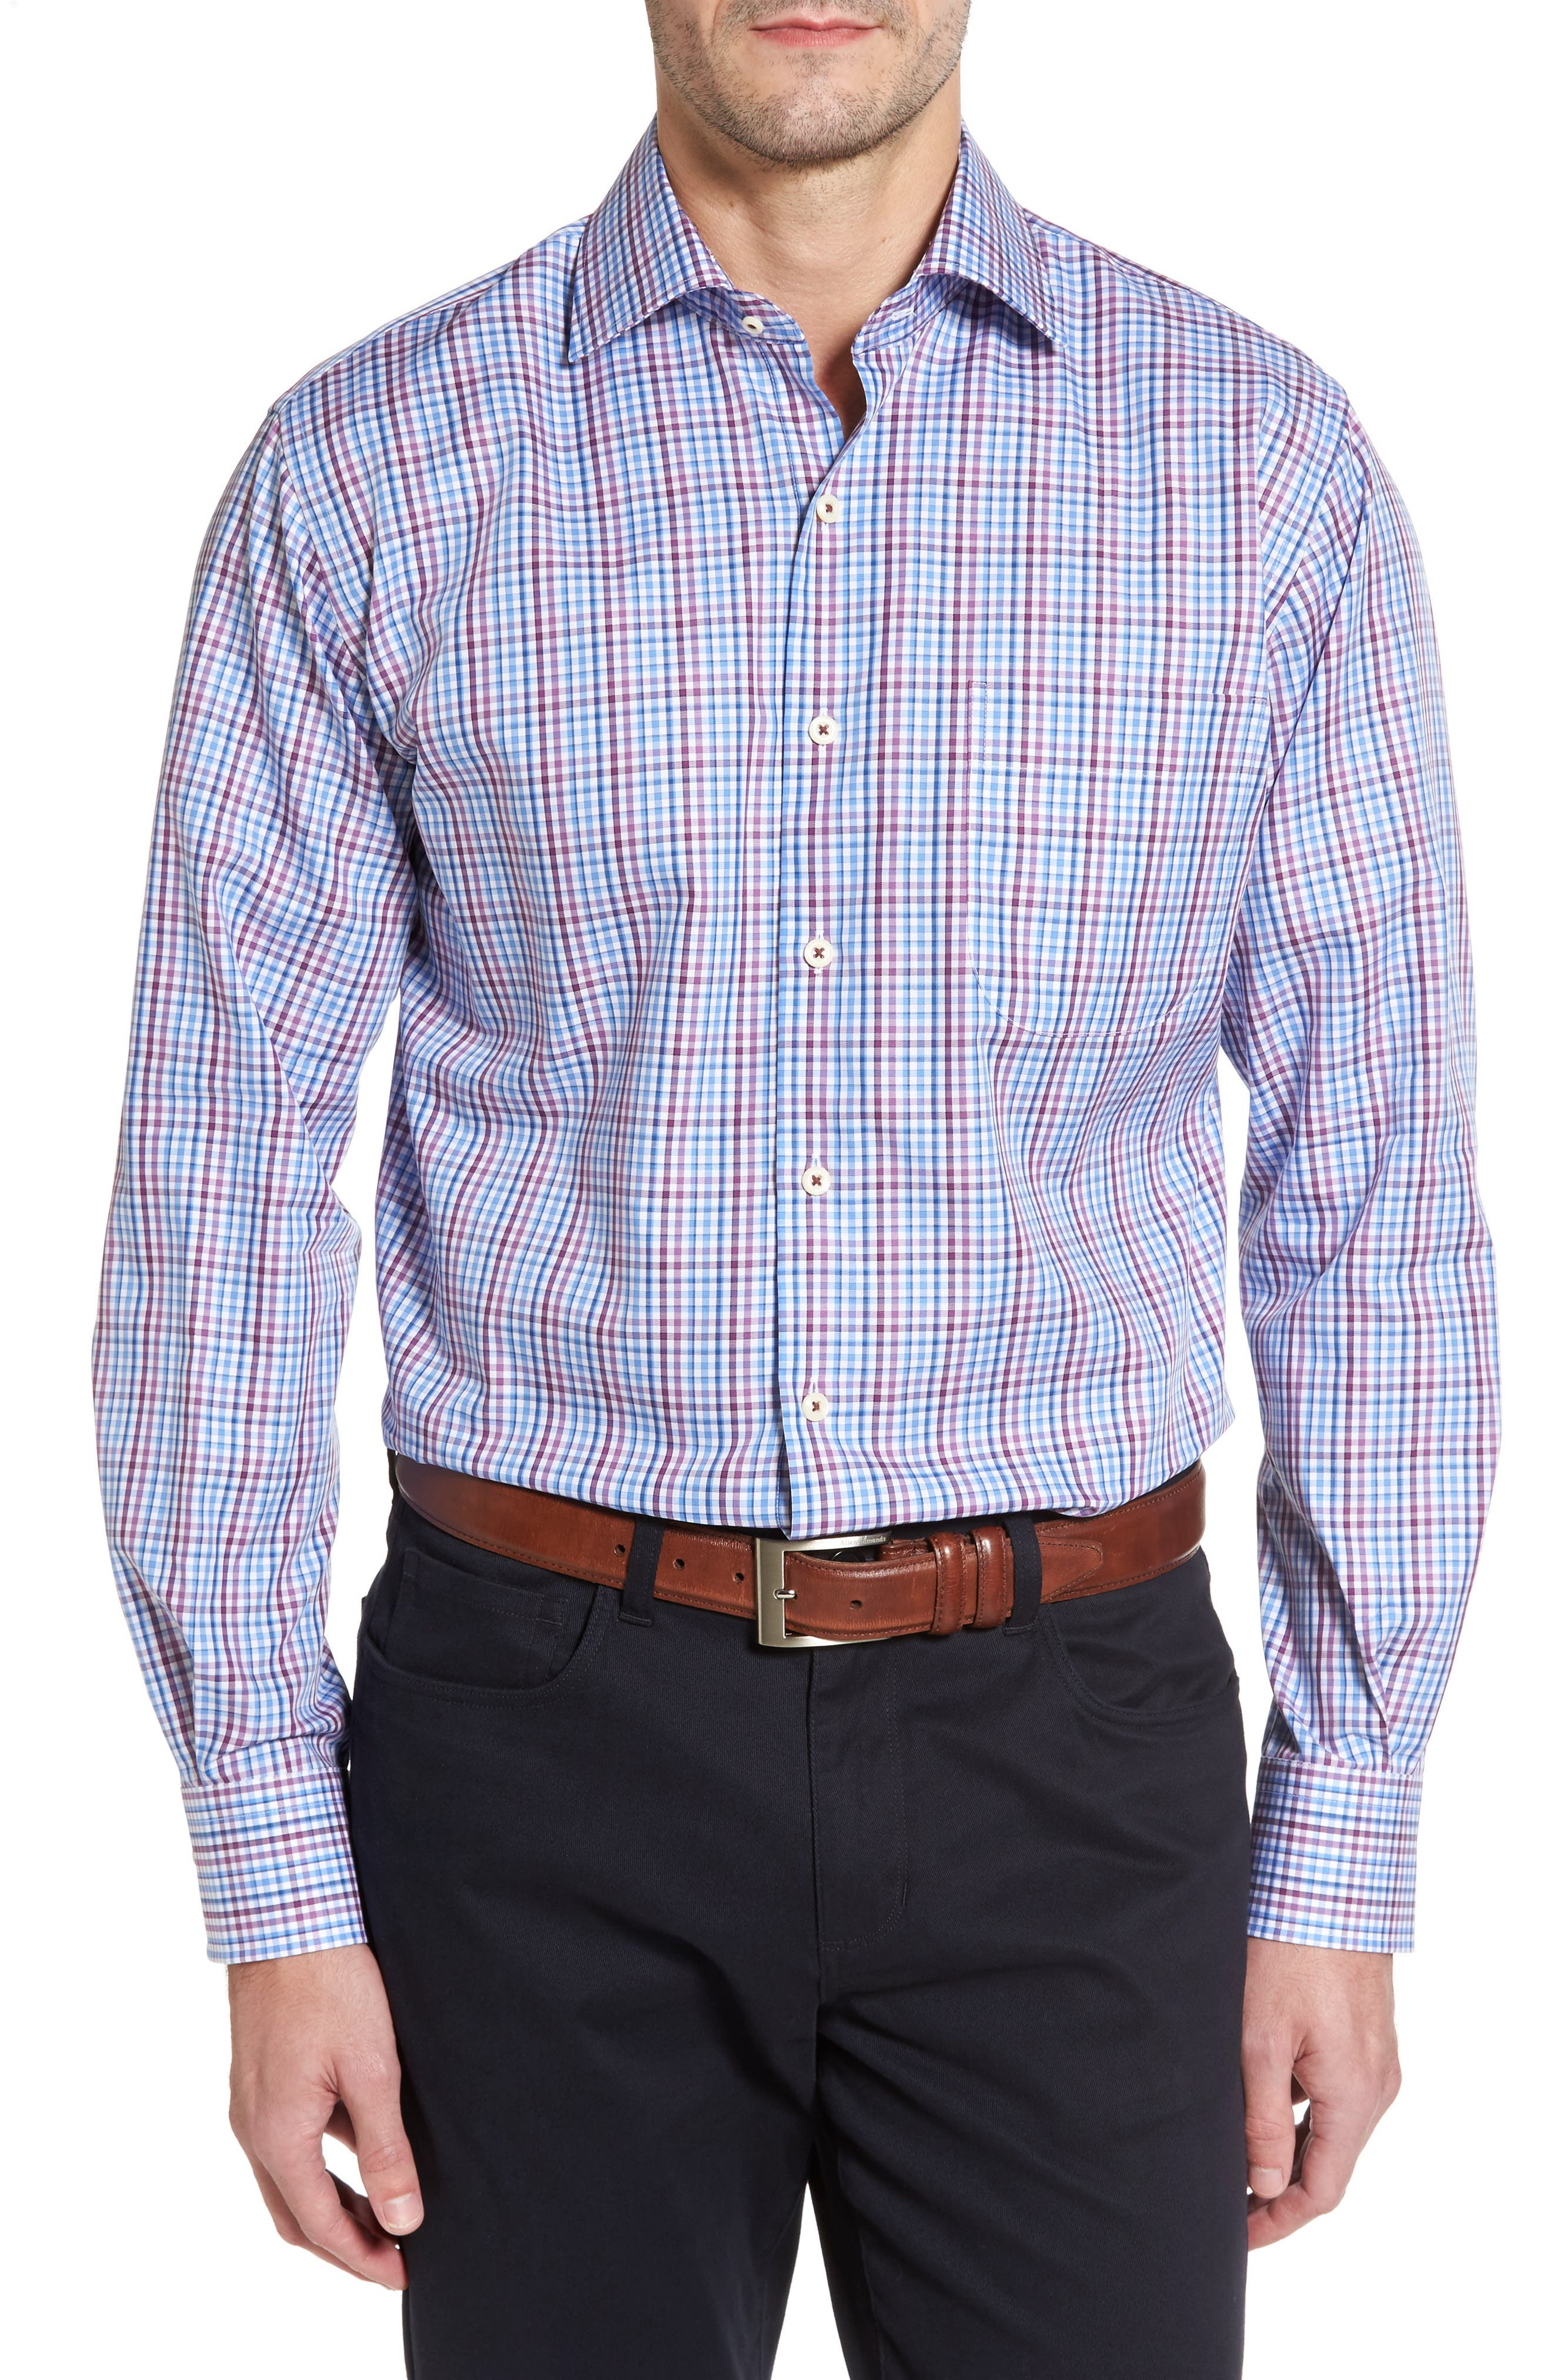 Grand Voyage Regular Fit Tattersall Sport Shirt,                             Main thumbnail 1, color,                             Vessel